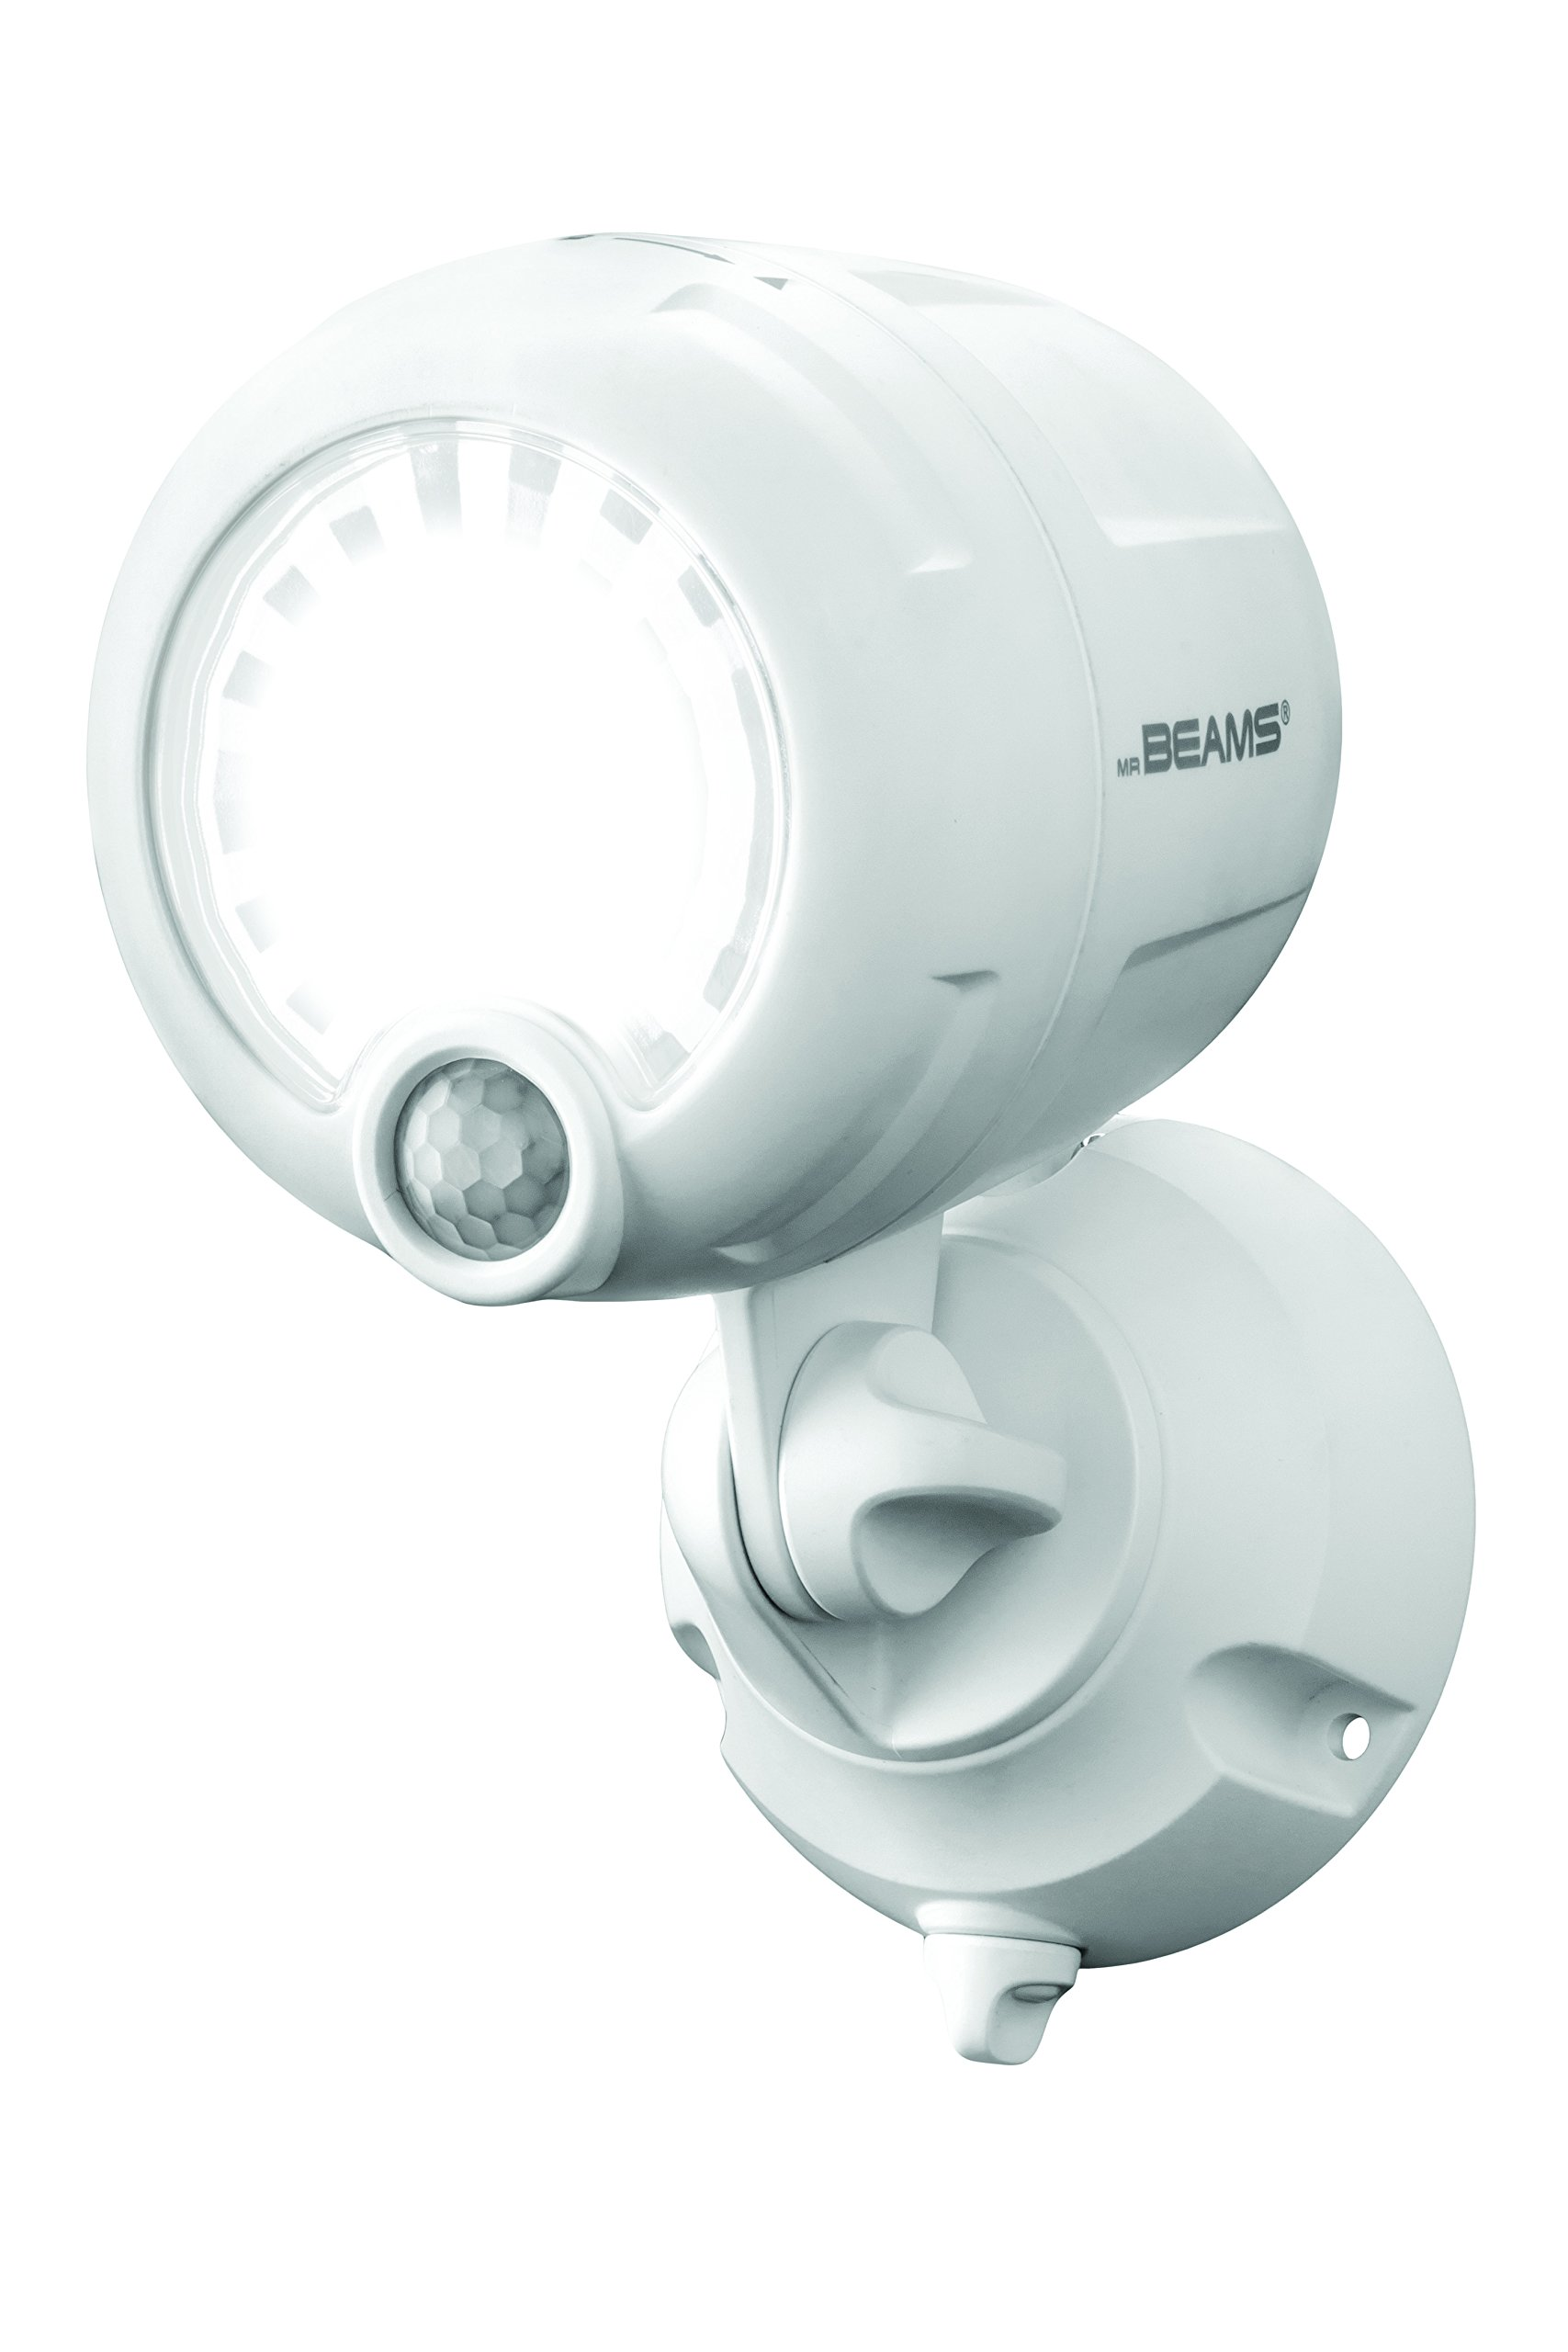 Mr. Beams MB360XT-Wht-01-00 Wireless 200 Lm Battery-Operated Outdoor Motion-Sensor-Activated LED Spotlight, White